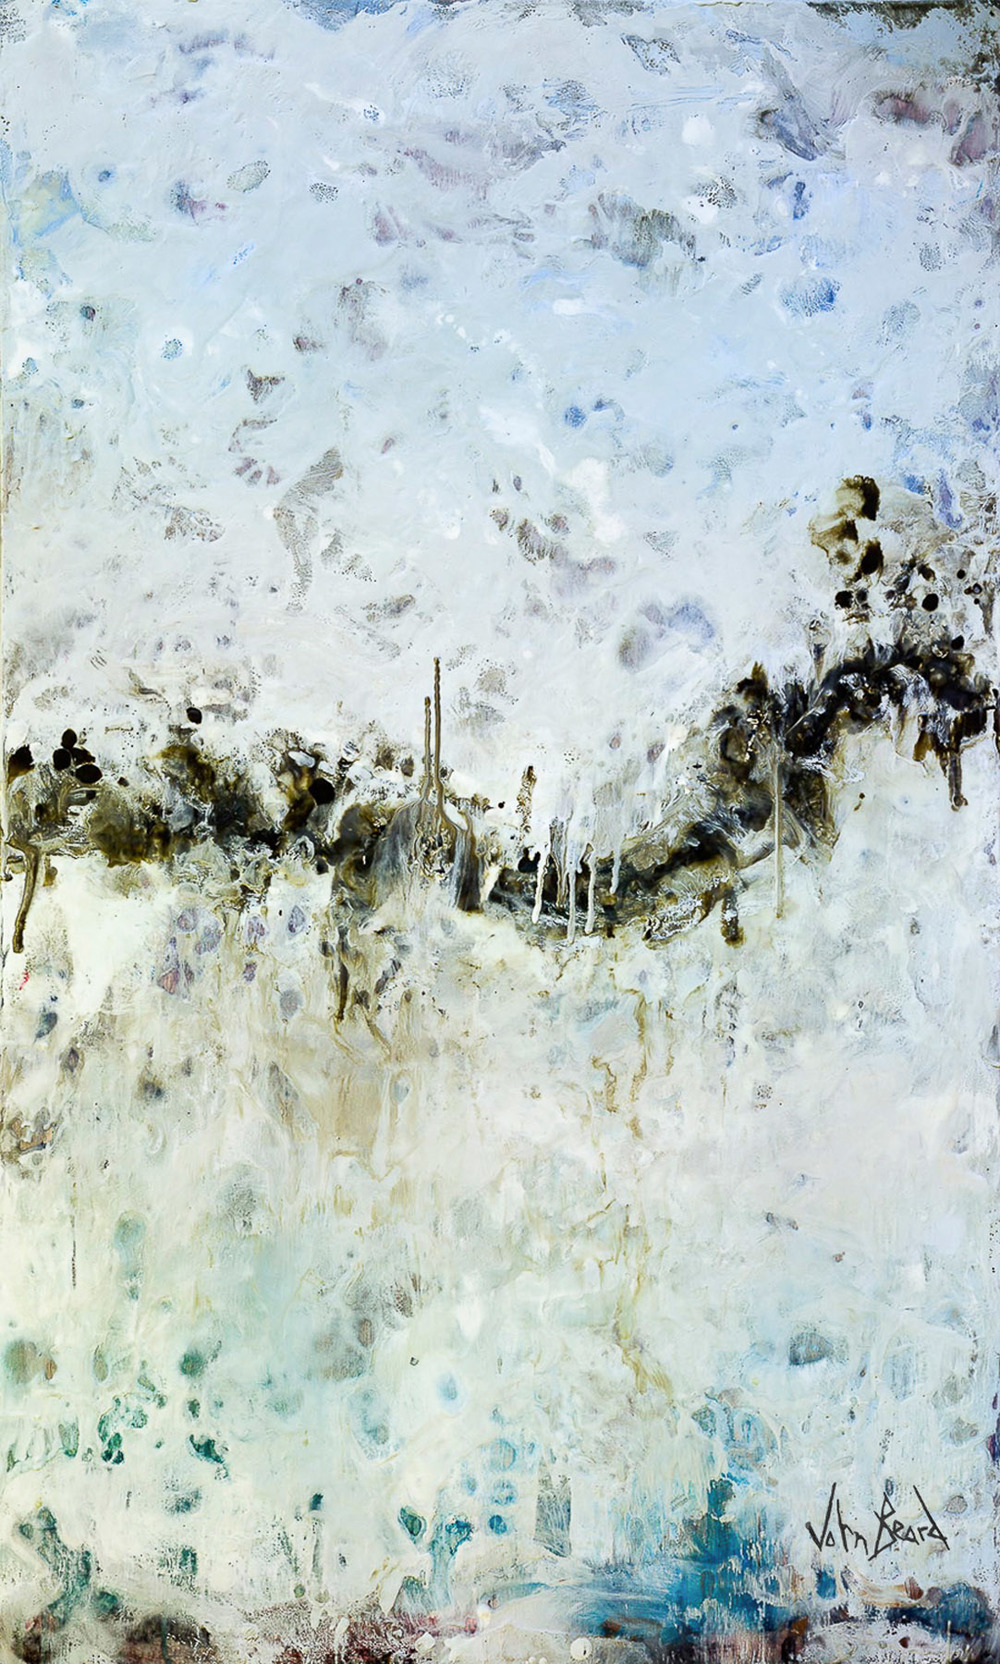 Horizon I by John Beard, 24x40 Encaustic